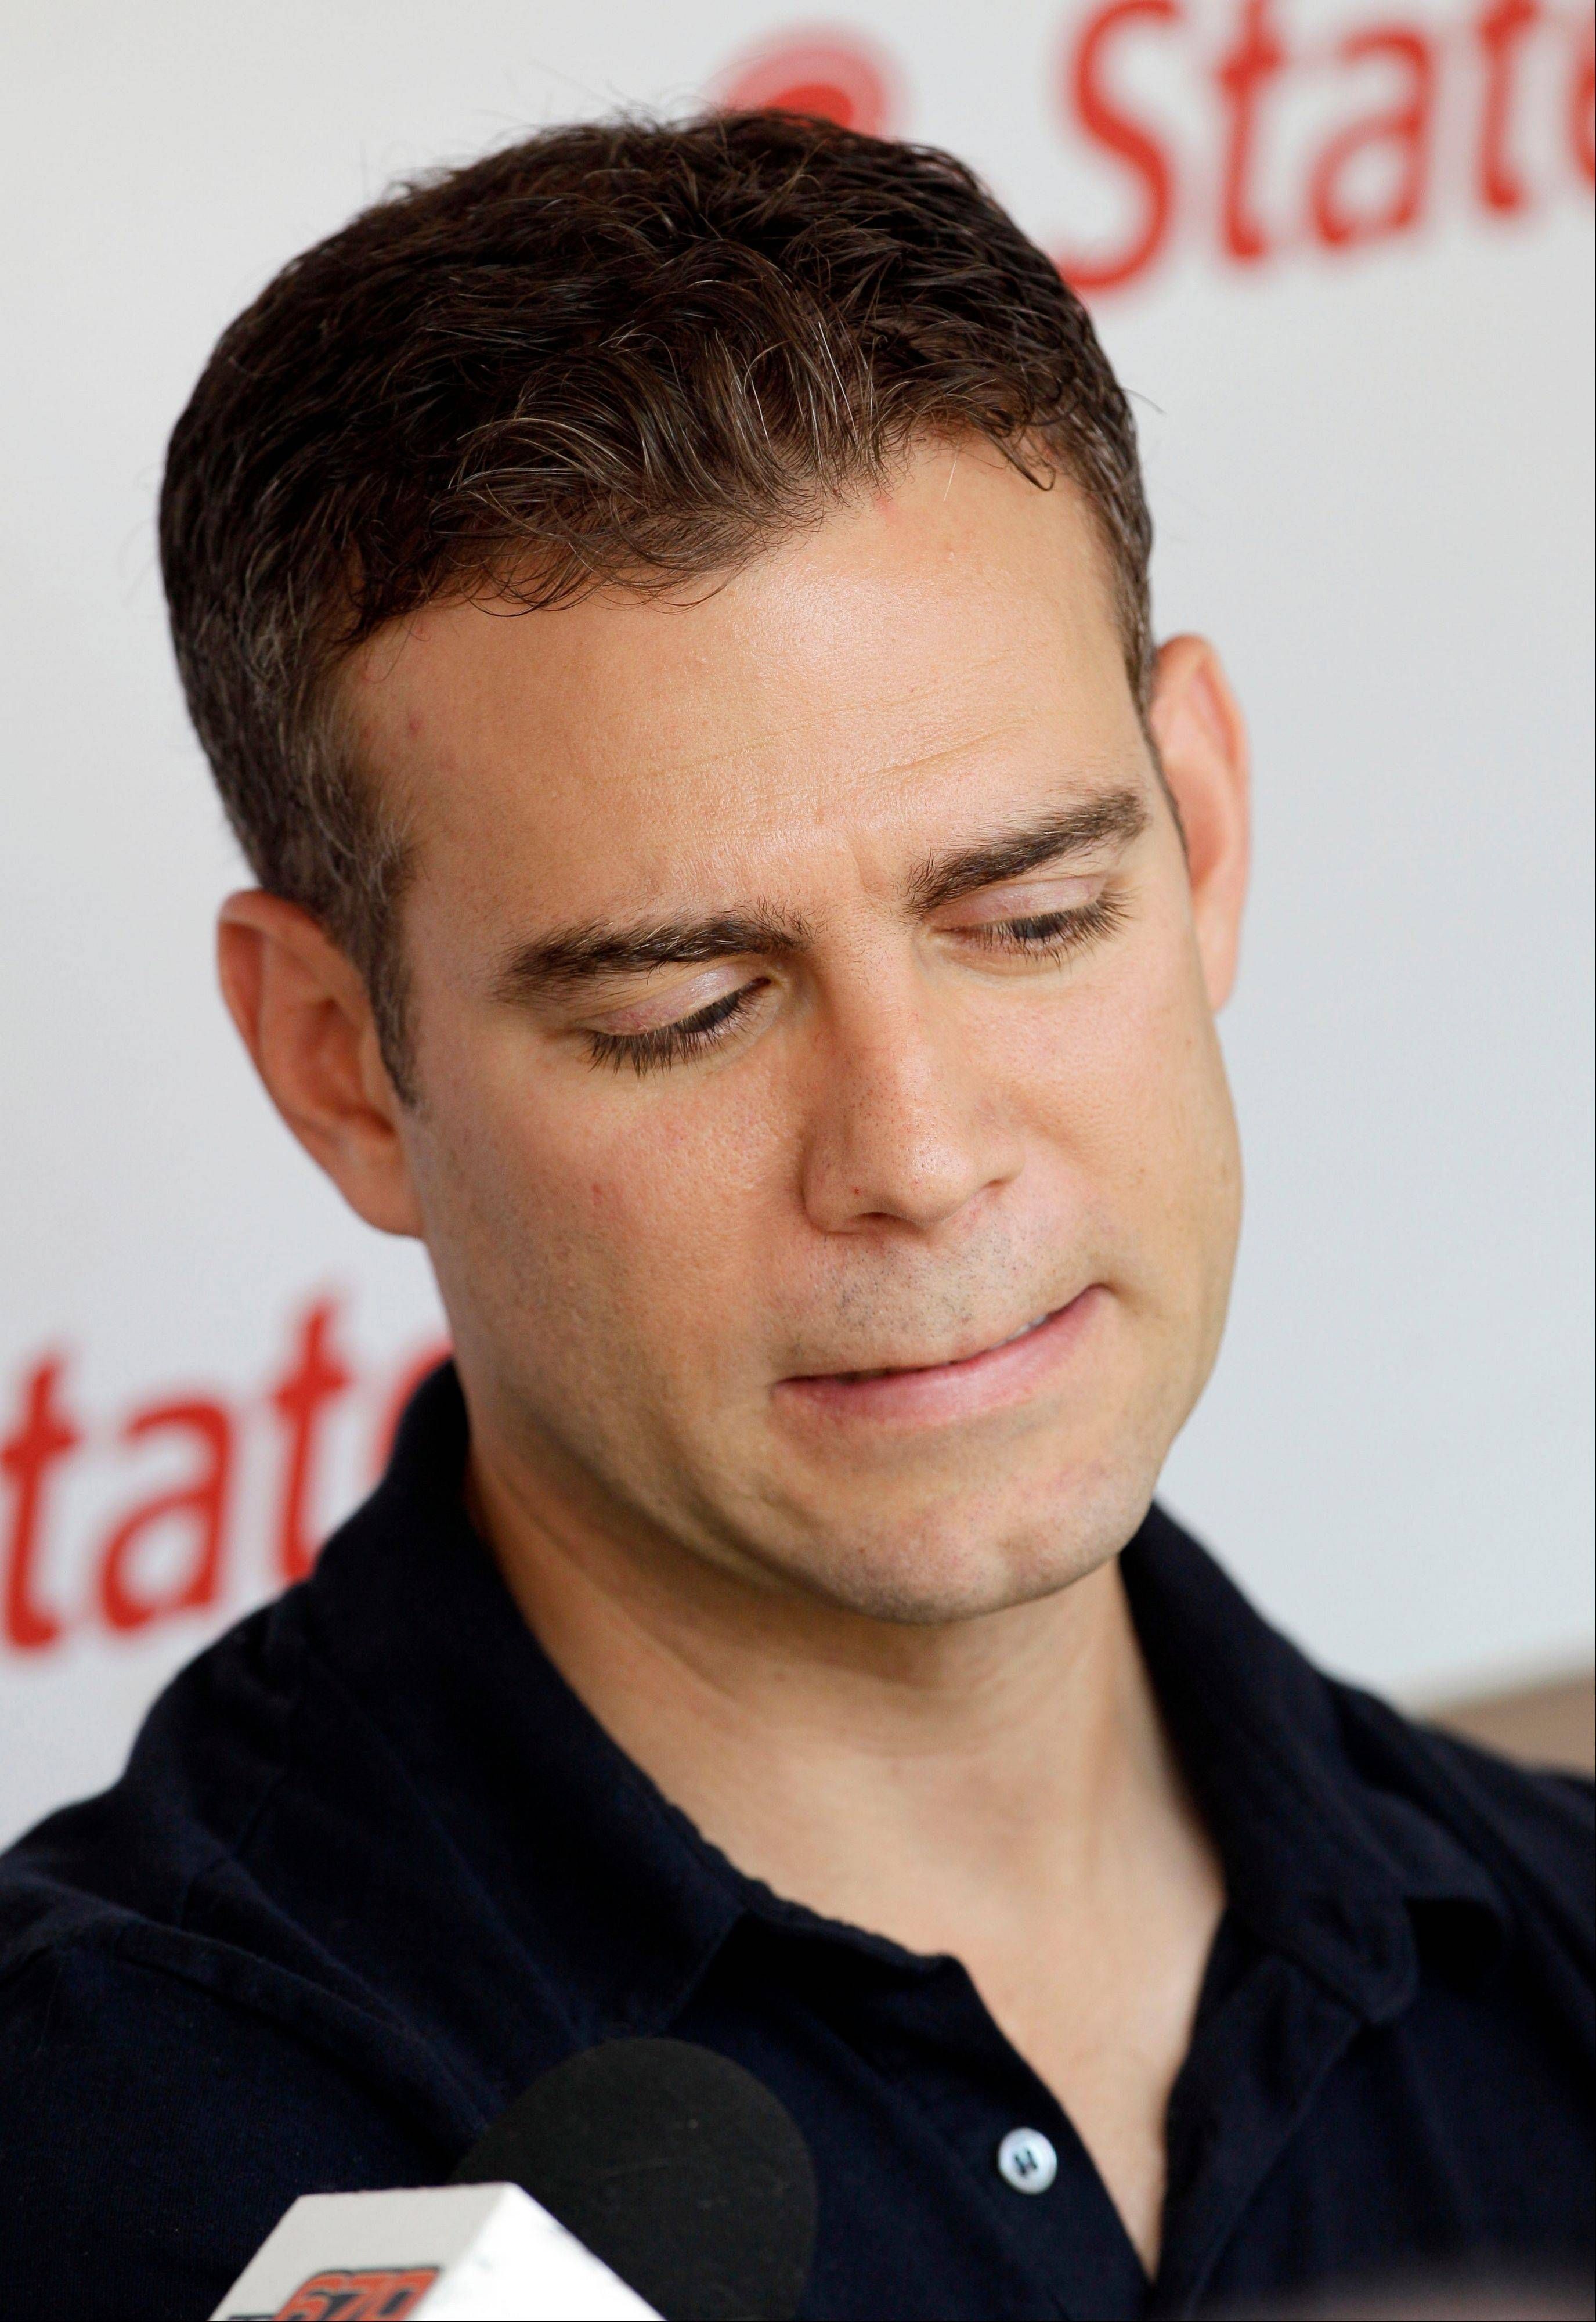 Cubs President Theo Epstein is not one to deceive fans concerning how soon he feels the team will be a contender.